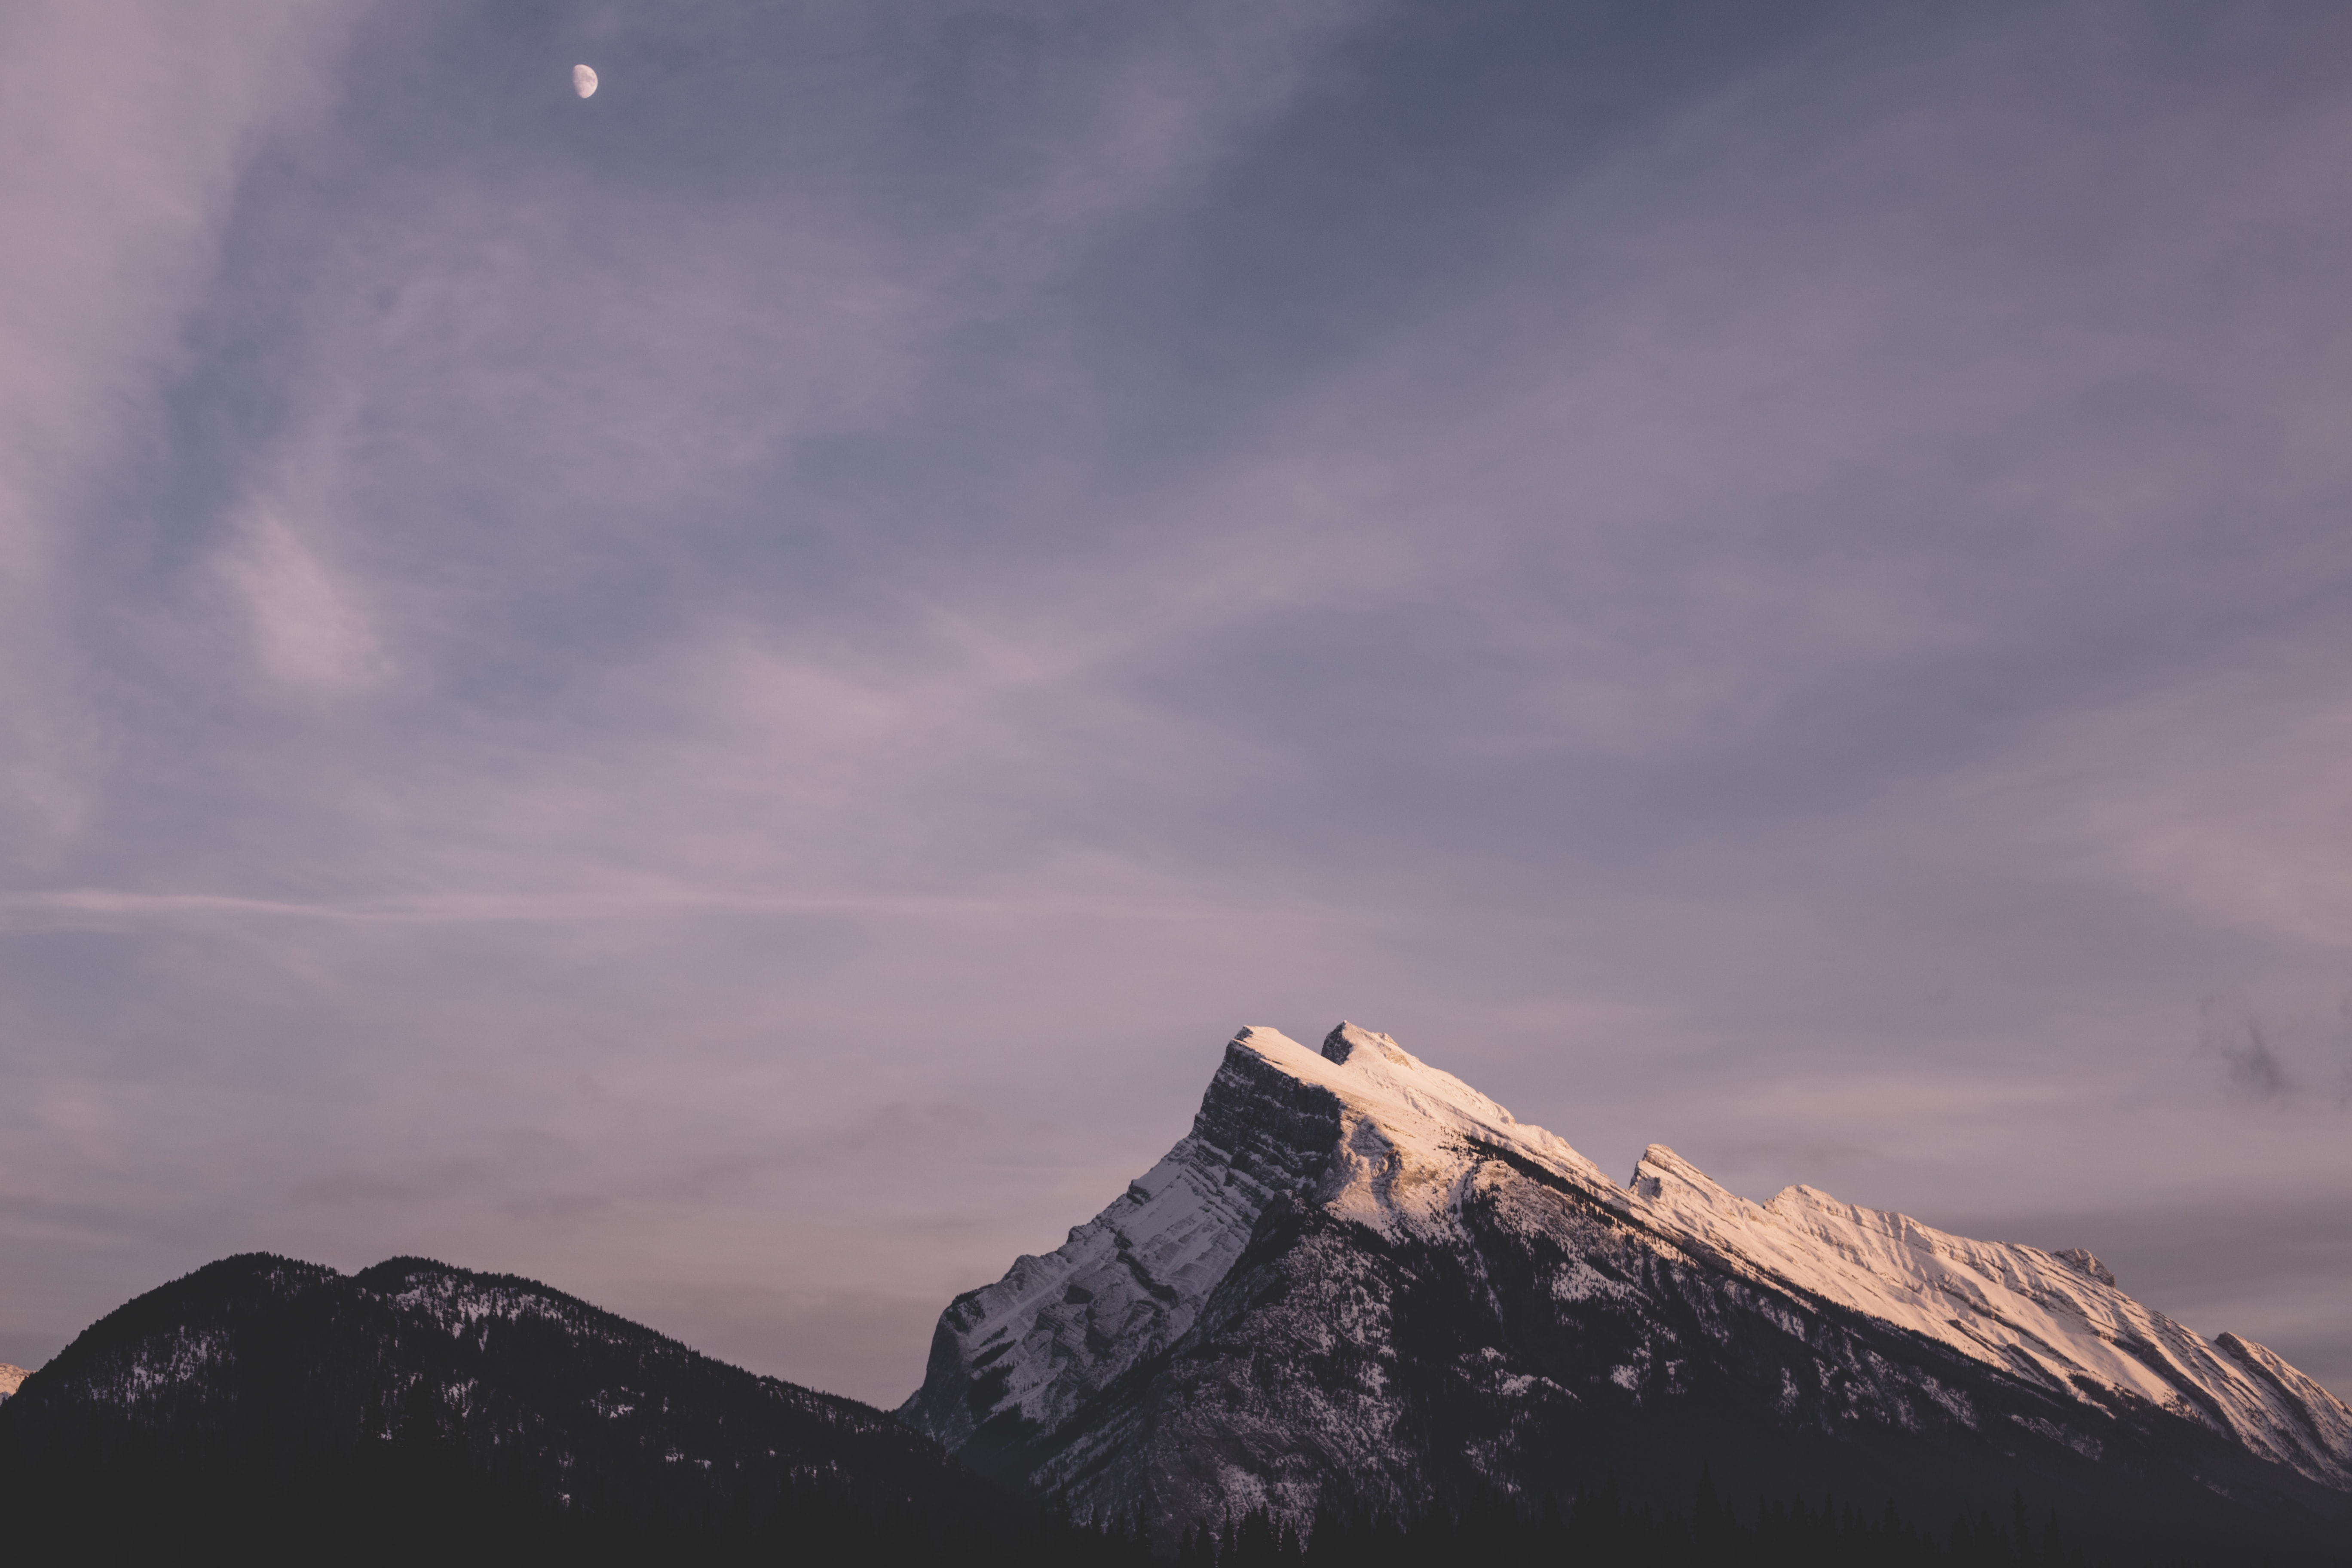 Moon on a cloudy sky over the mountains at Banff